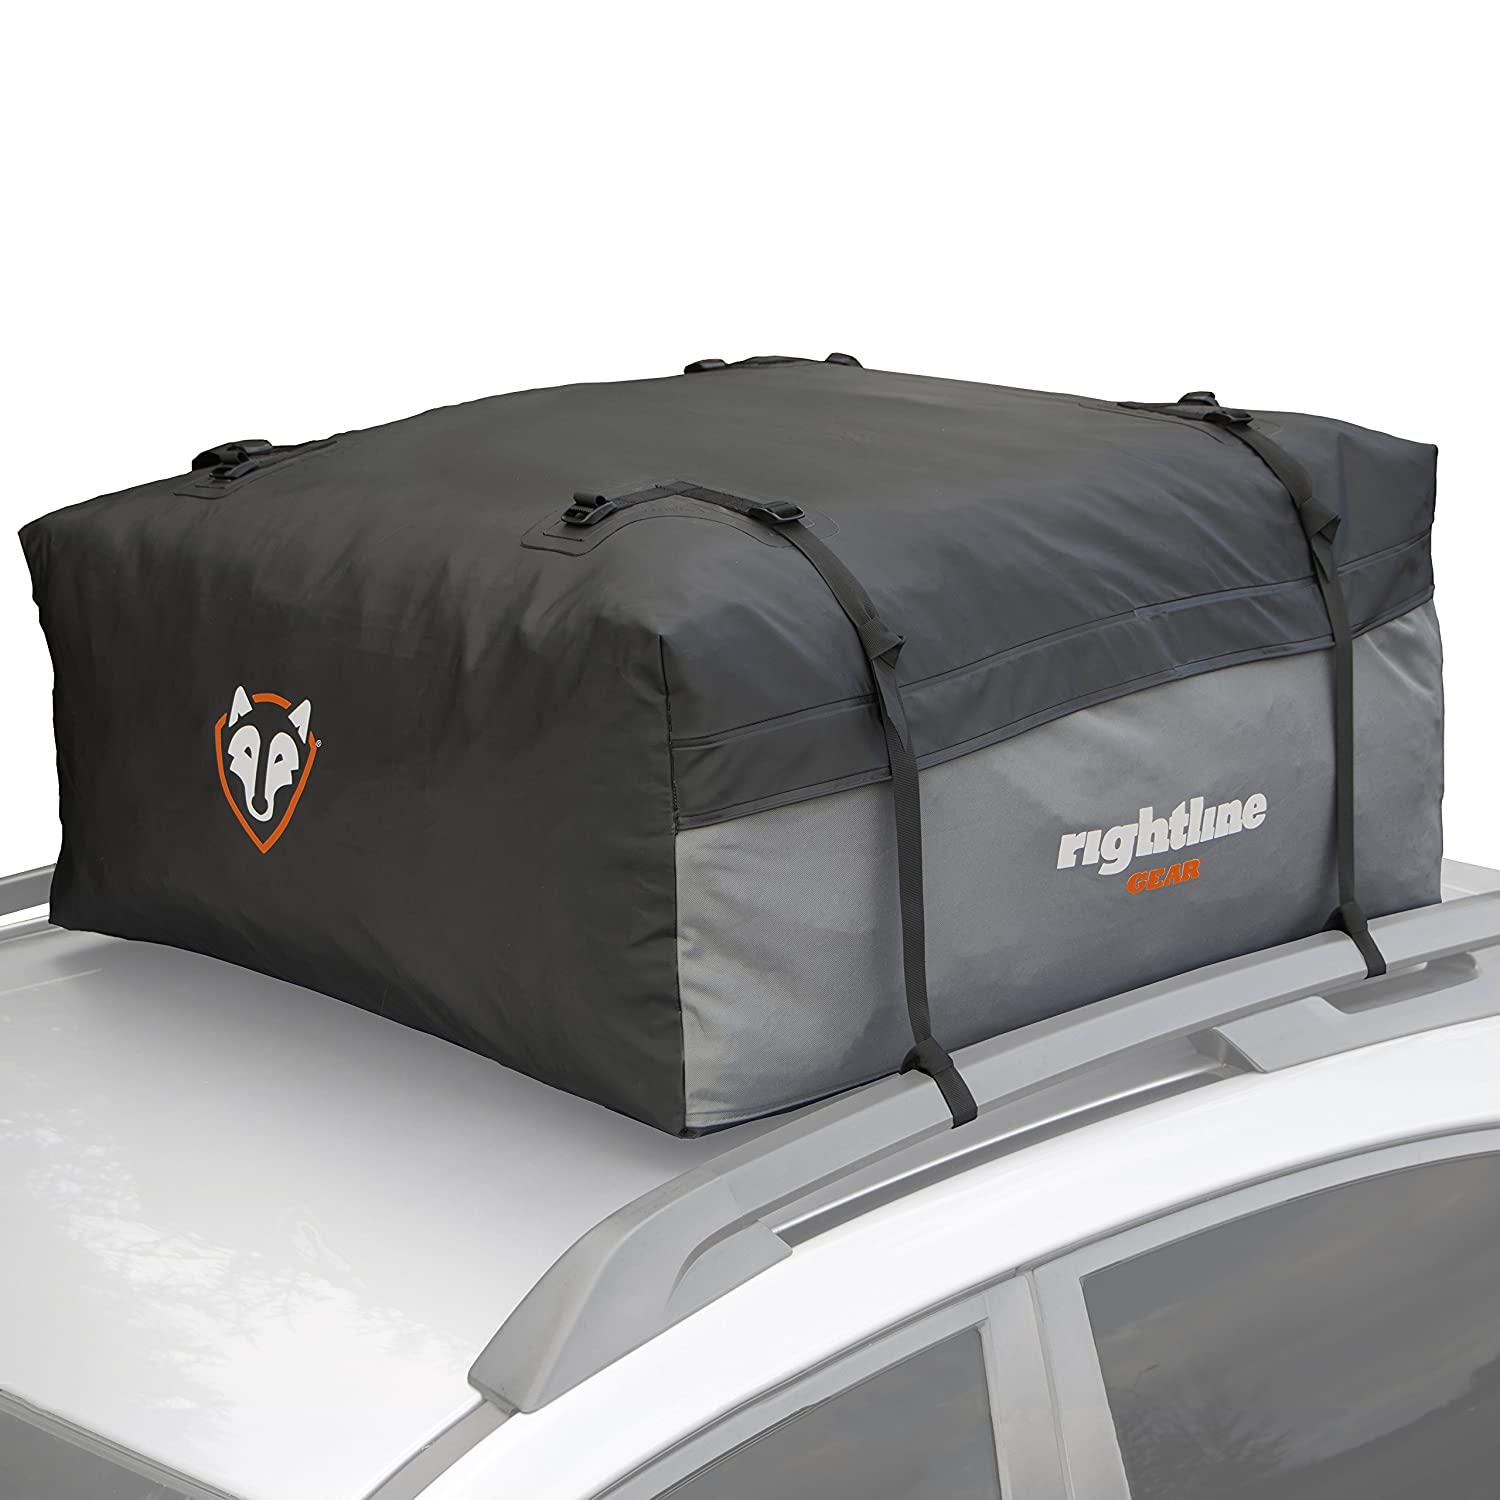 Rightline Gear 100S10 Sport 1 Car Top Carrier, 12 cubic feet, 100% Waterproof, works with or without vehicle roof rack